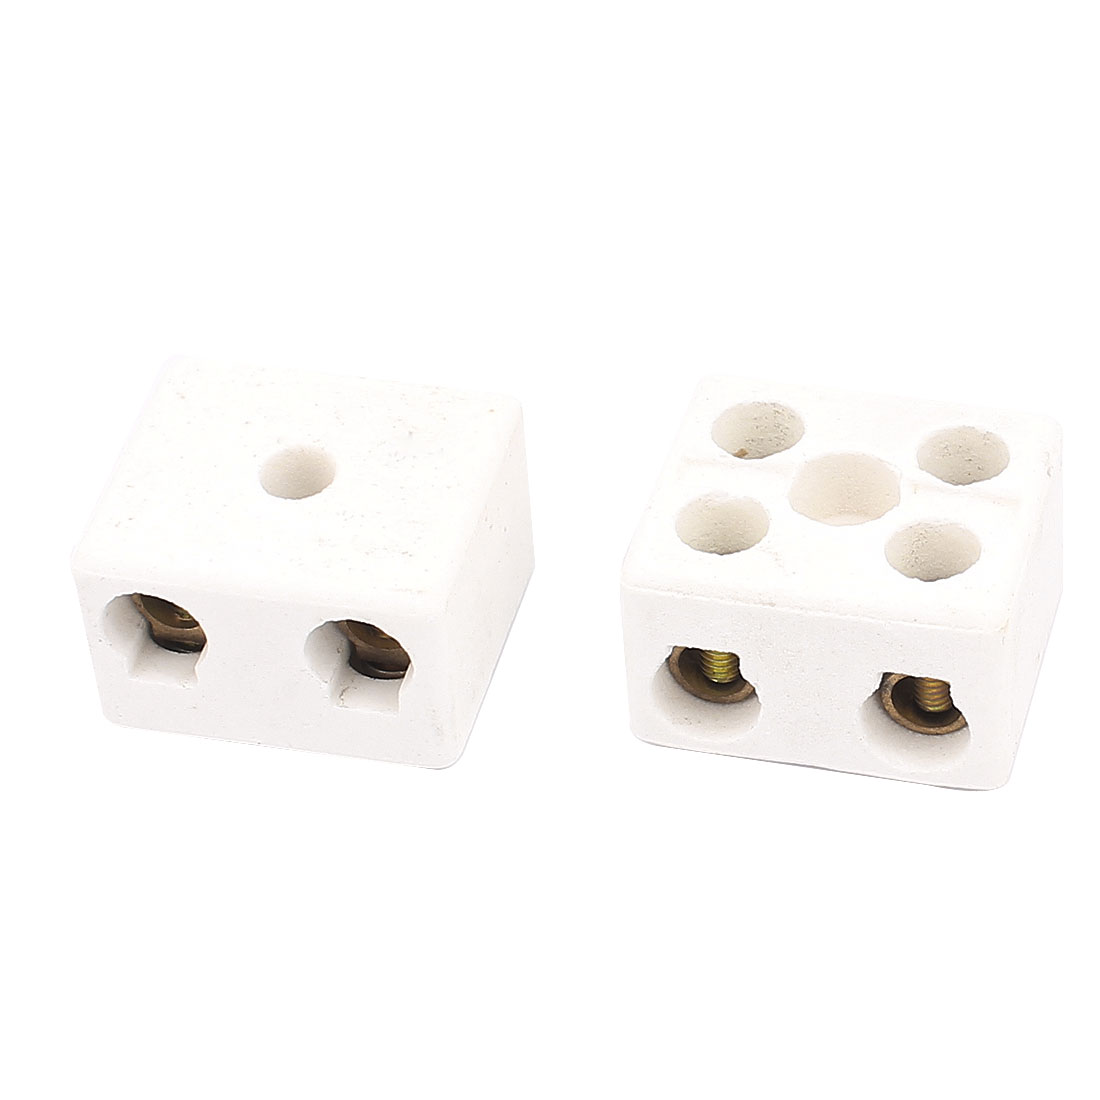 2PCS Cable Connector 2 Position 2 Row Ceramic Terminal Block 220V 30A